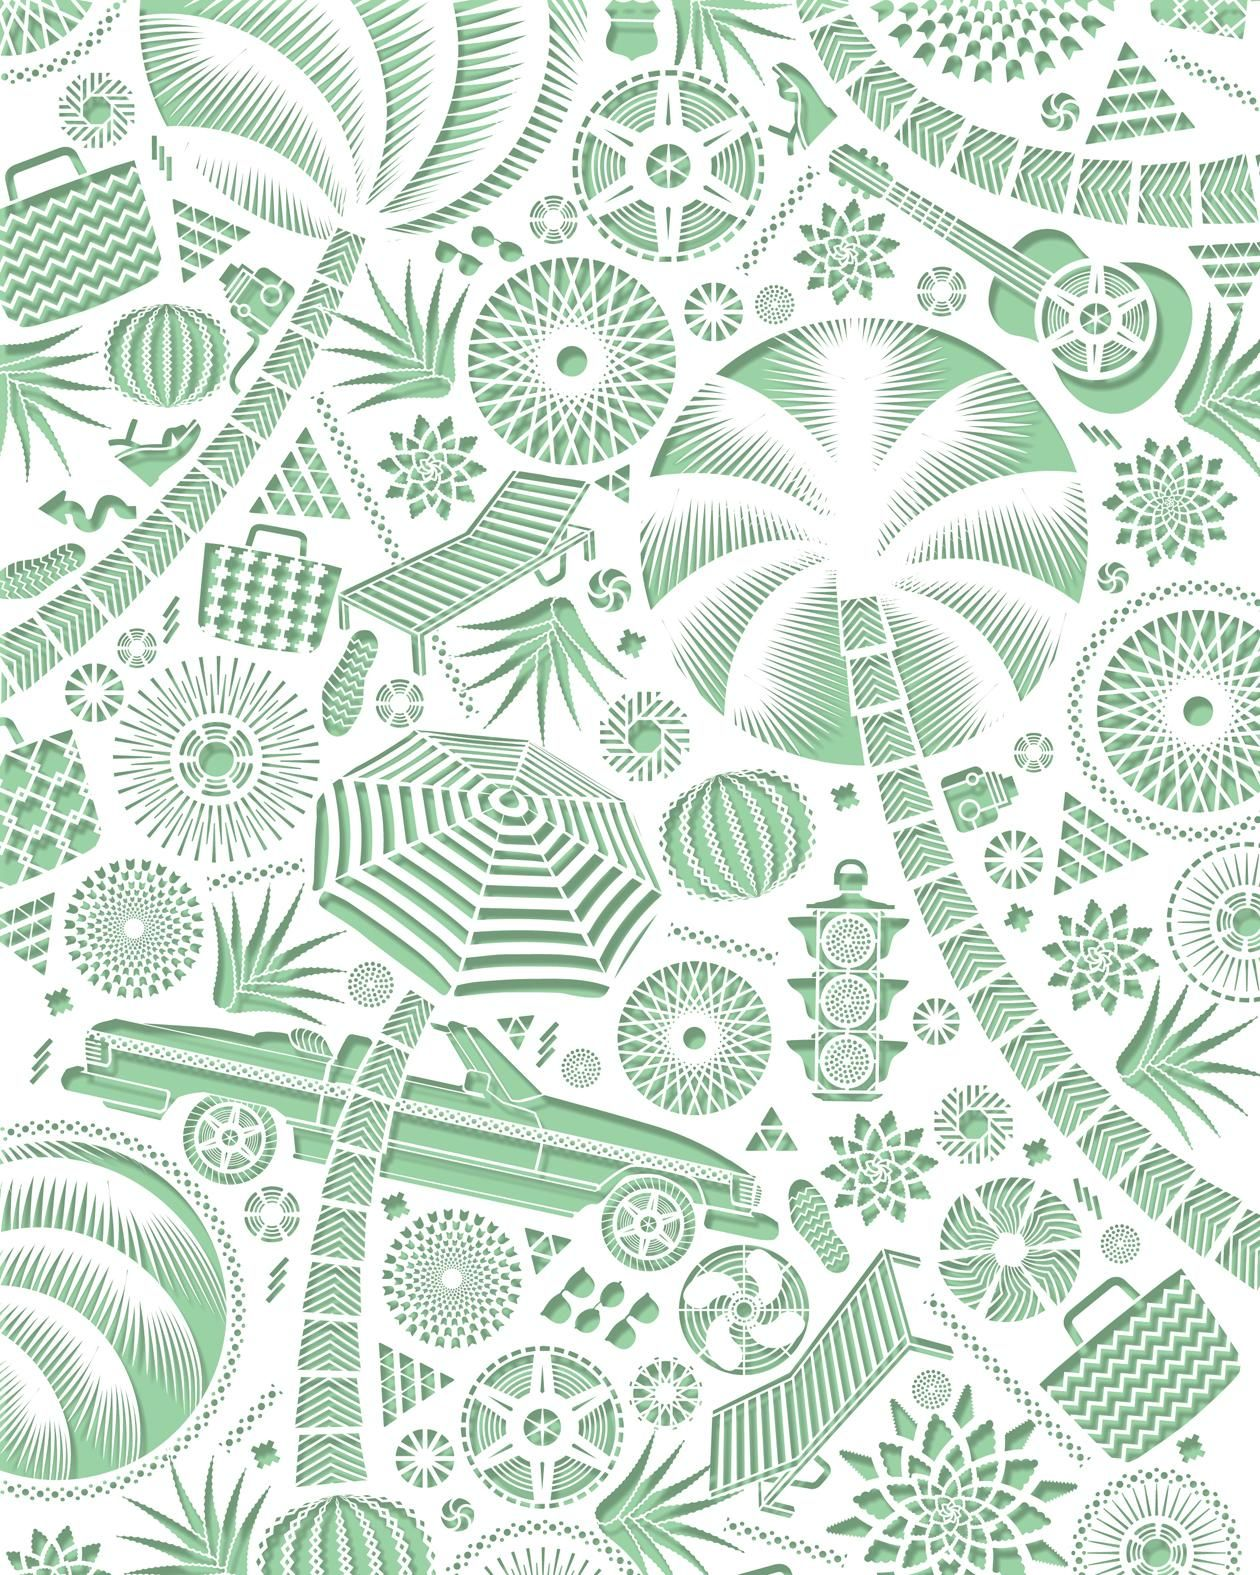 31 Tips For Designing Repeating Patterns In